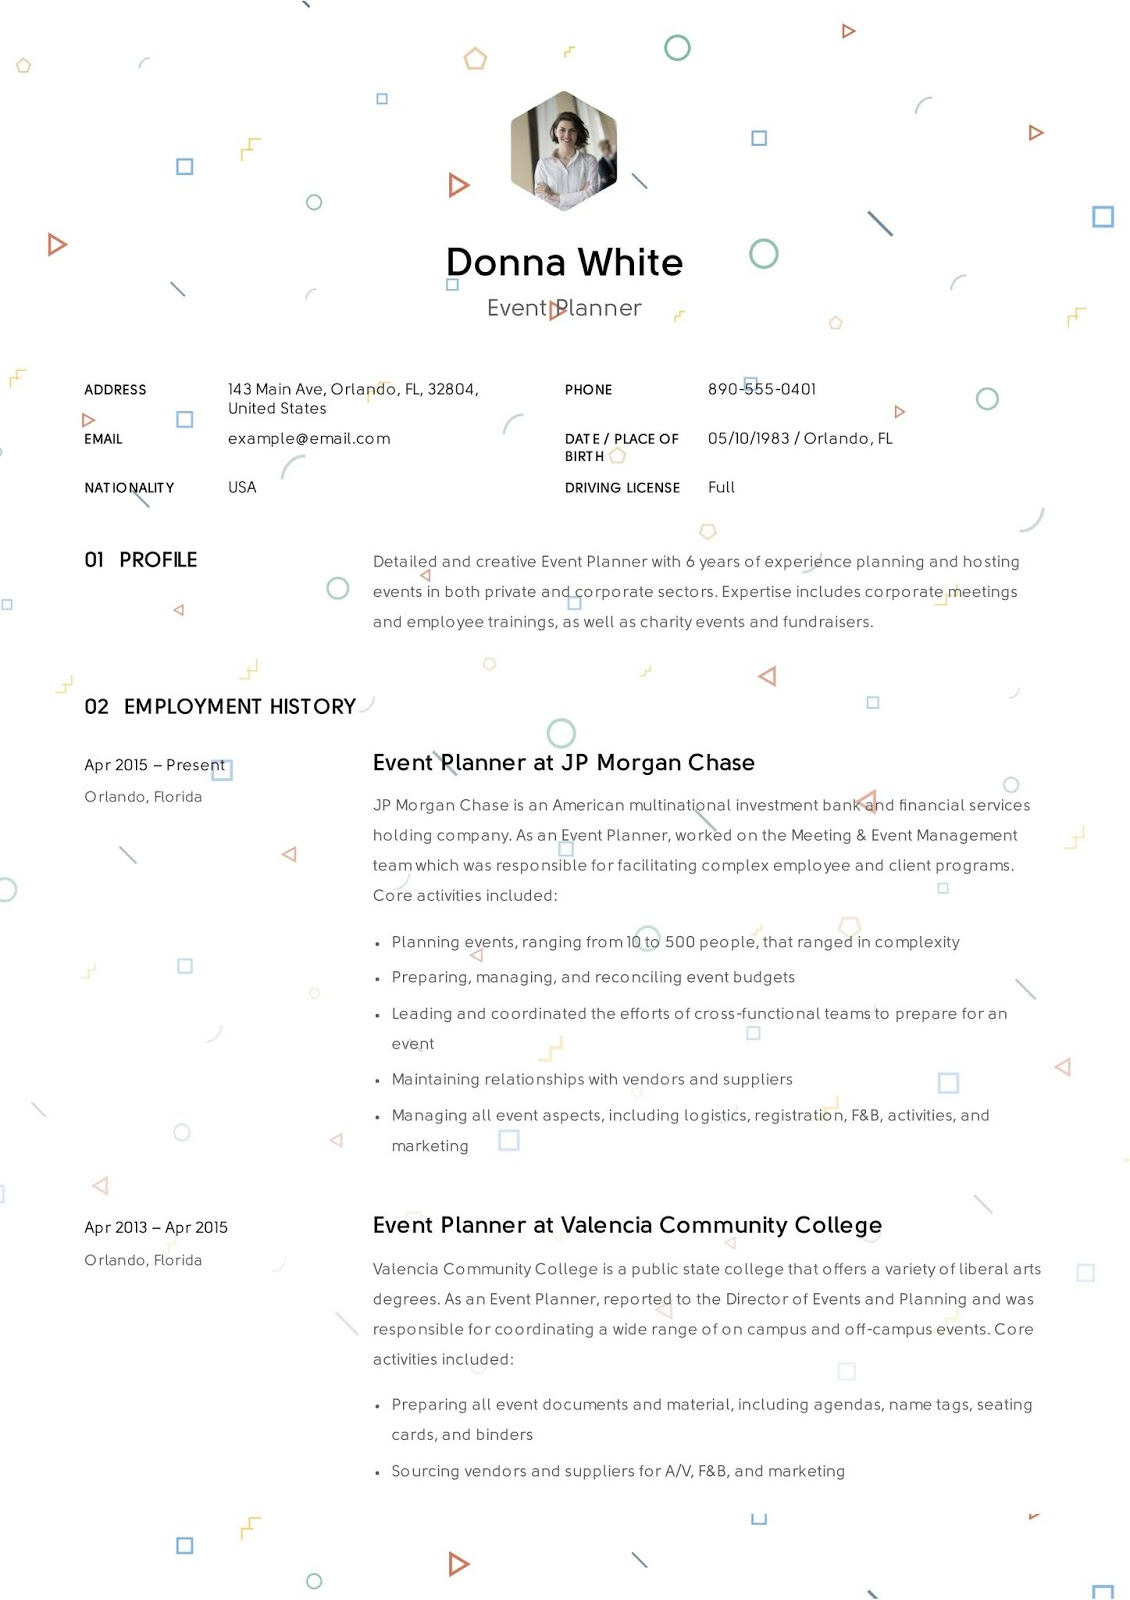 event planner resume examples event planner resume examples event coordinator resume examples event planner resume objective examples 2019 event planner functional resume examples event coordinator resume objective examples special event coordinator resume examples resume examples for event planner 2020